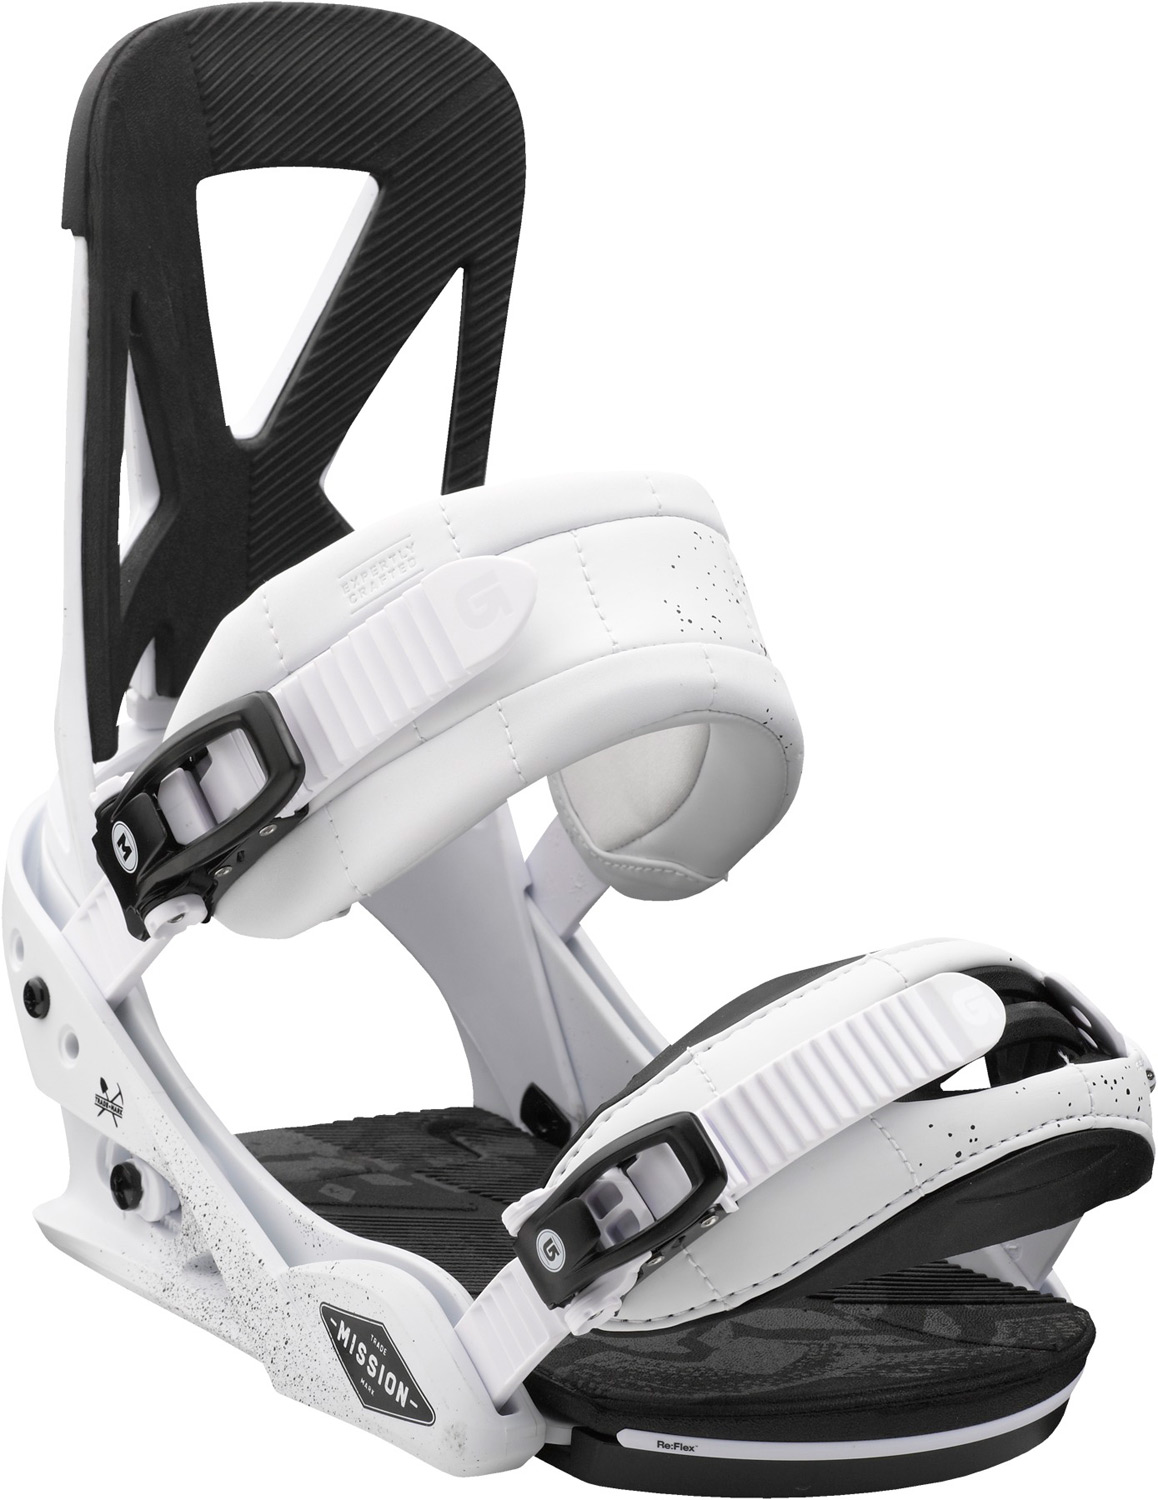 Snowboard Impressive flex meets newfound feel. The Mission continues.Key Features of the Burton Mission Snowboard Bindings: Response: 6 Baseplate: NEW Single-Component 30% Short-Glass/Nylon Composite Re:Flex™ Hi-Back: NEW Single-Component Canted living Hinge™ Zero-lean Hi-Back with DialFlAD™ Straps: Superstrap™ and Gettagrip Capstrap™ Buckles: Smooth Glide™ Buckles Cushioning: Re:Flex FullBED Cushioning System Features Re-Ground Materials in Baseplate and Hi-Back to Reduce Waste - $149.95